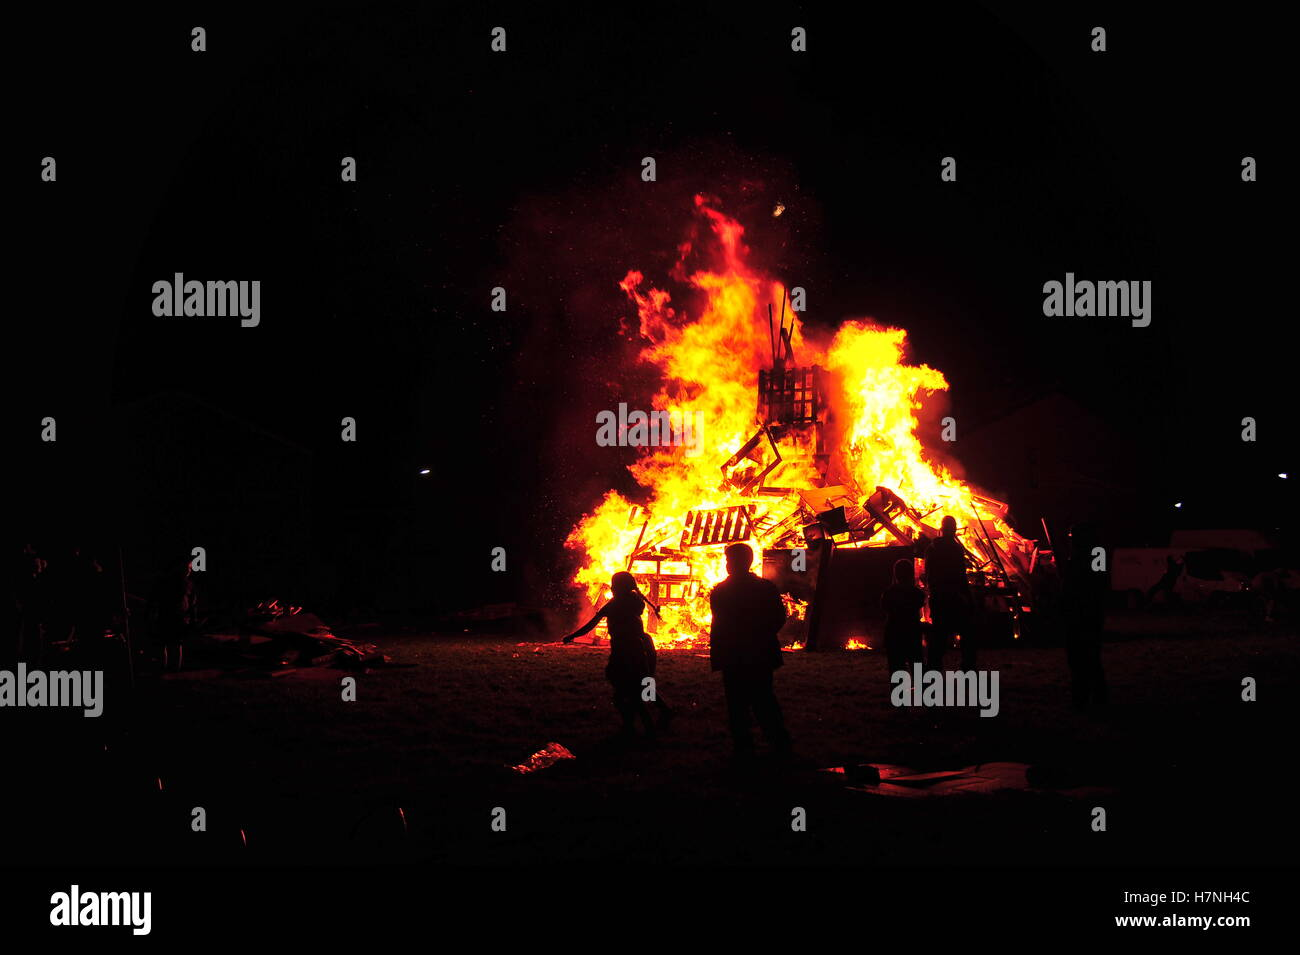 November 5th 2016. Family attend street bonfire in Liverpool. - Stock Image